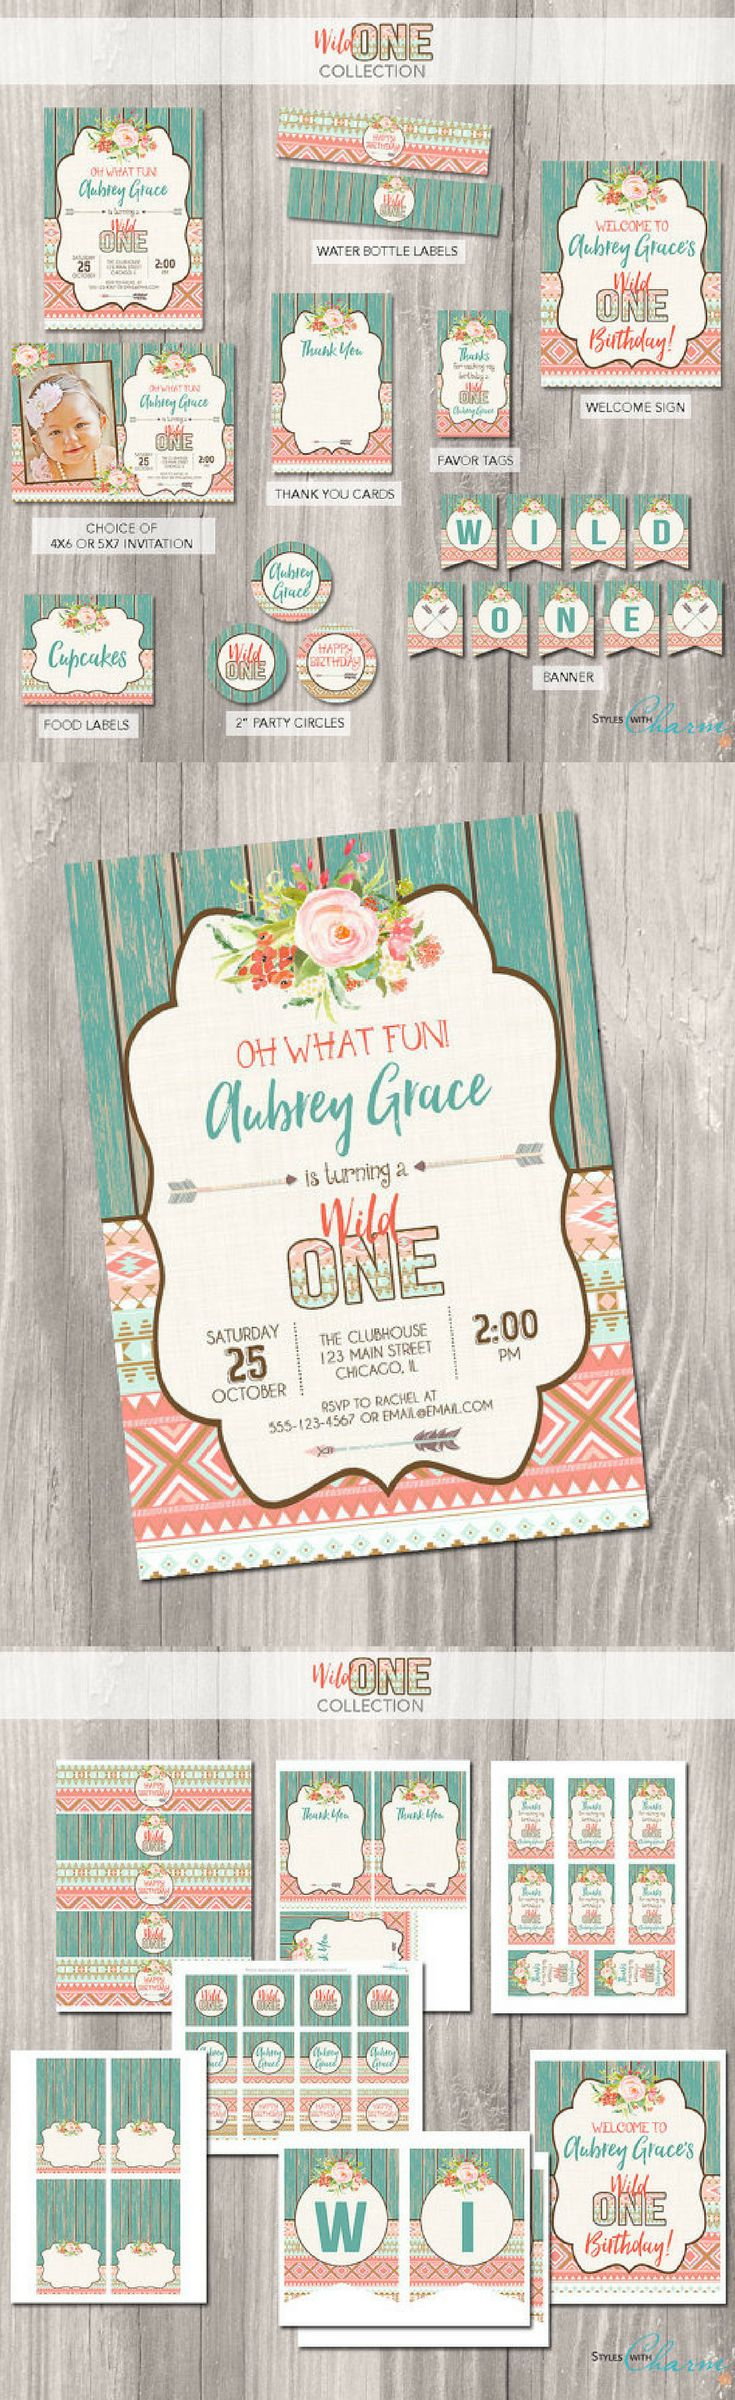 wording ideas forst birthday party invitation%0A Wild One Birthday Party Decoration Package   First Birthday Party Decor    Wild One Printables   Invitations  Cupcake toppers  Banner  Food Labels